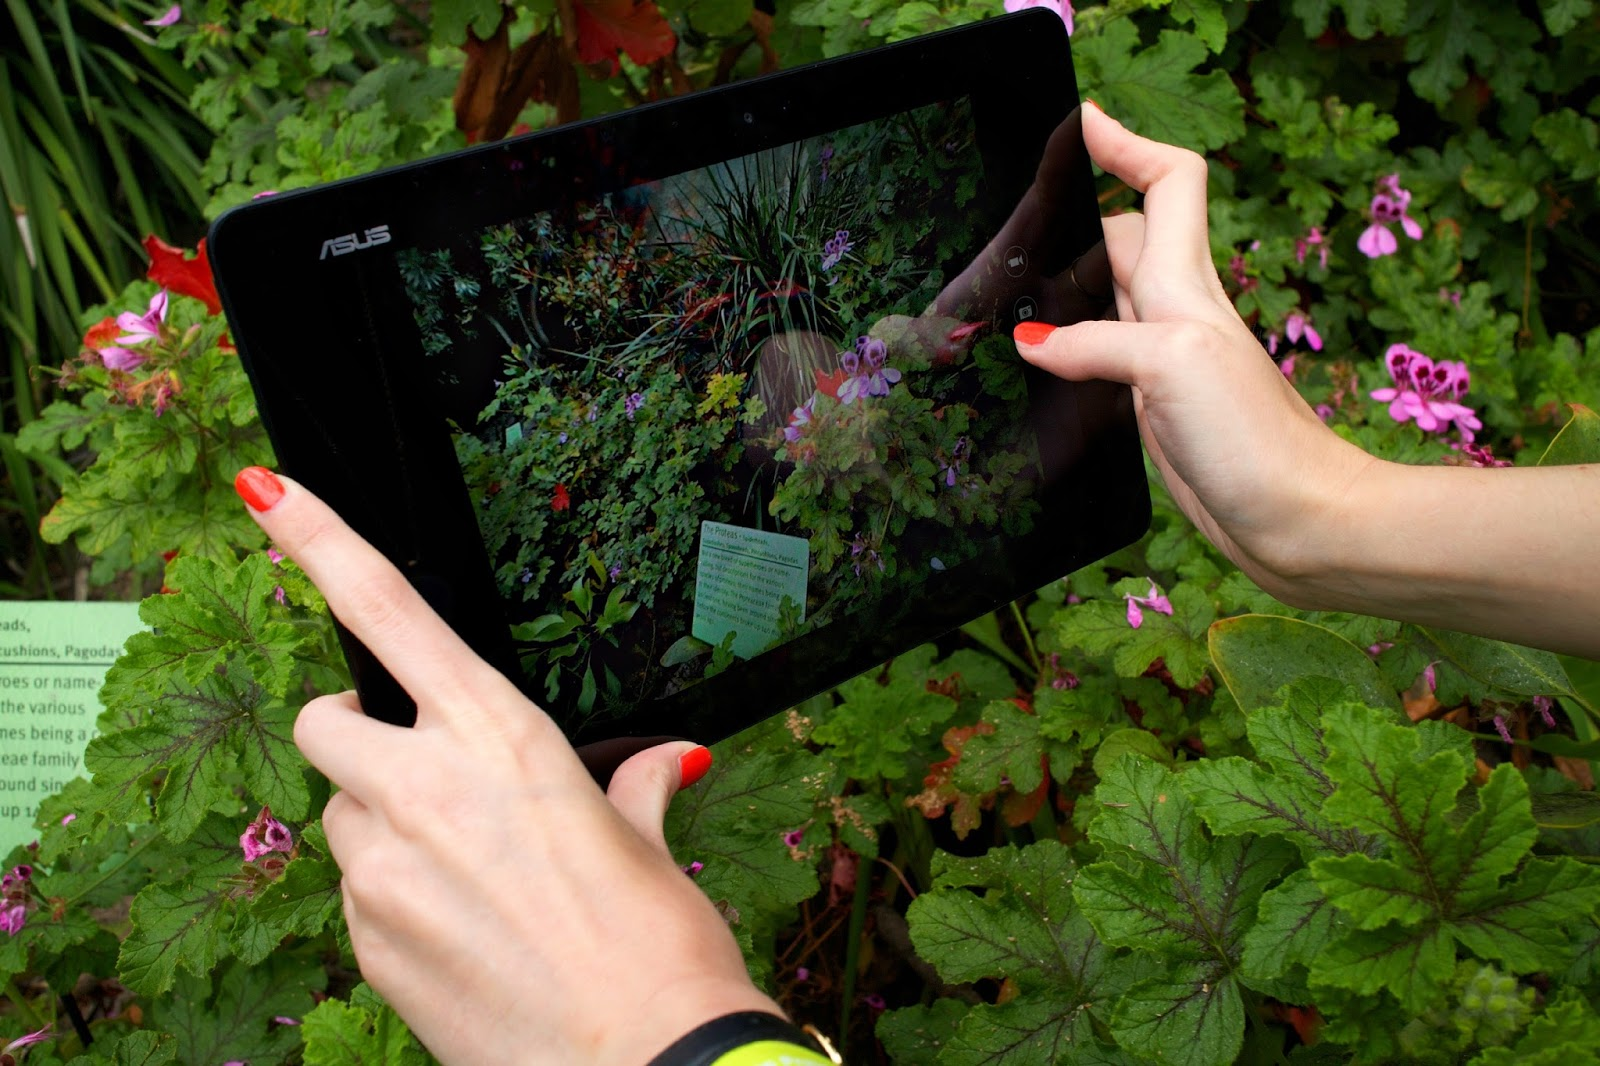 asus t100 chi blogger review photography